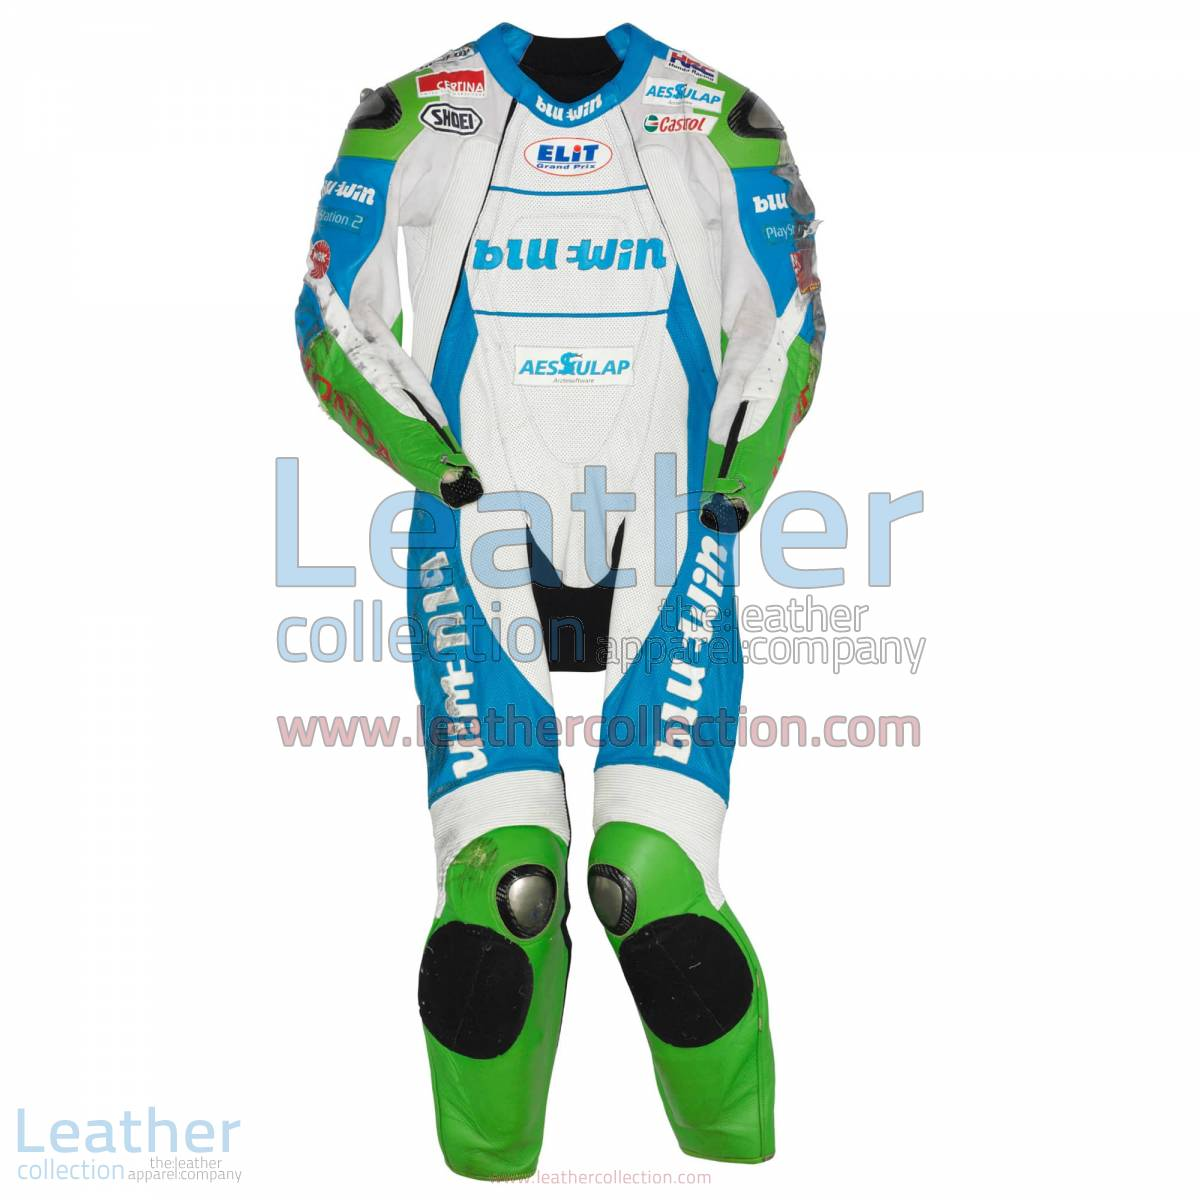 Thomas Luthi Honda GP 2005 Leather Suit | thomas luthi,honda suit